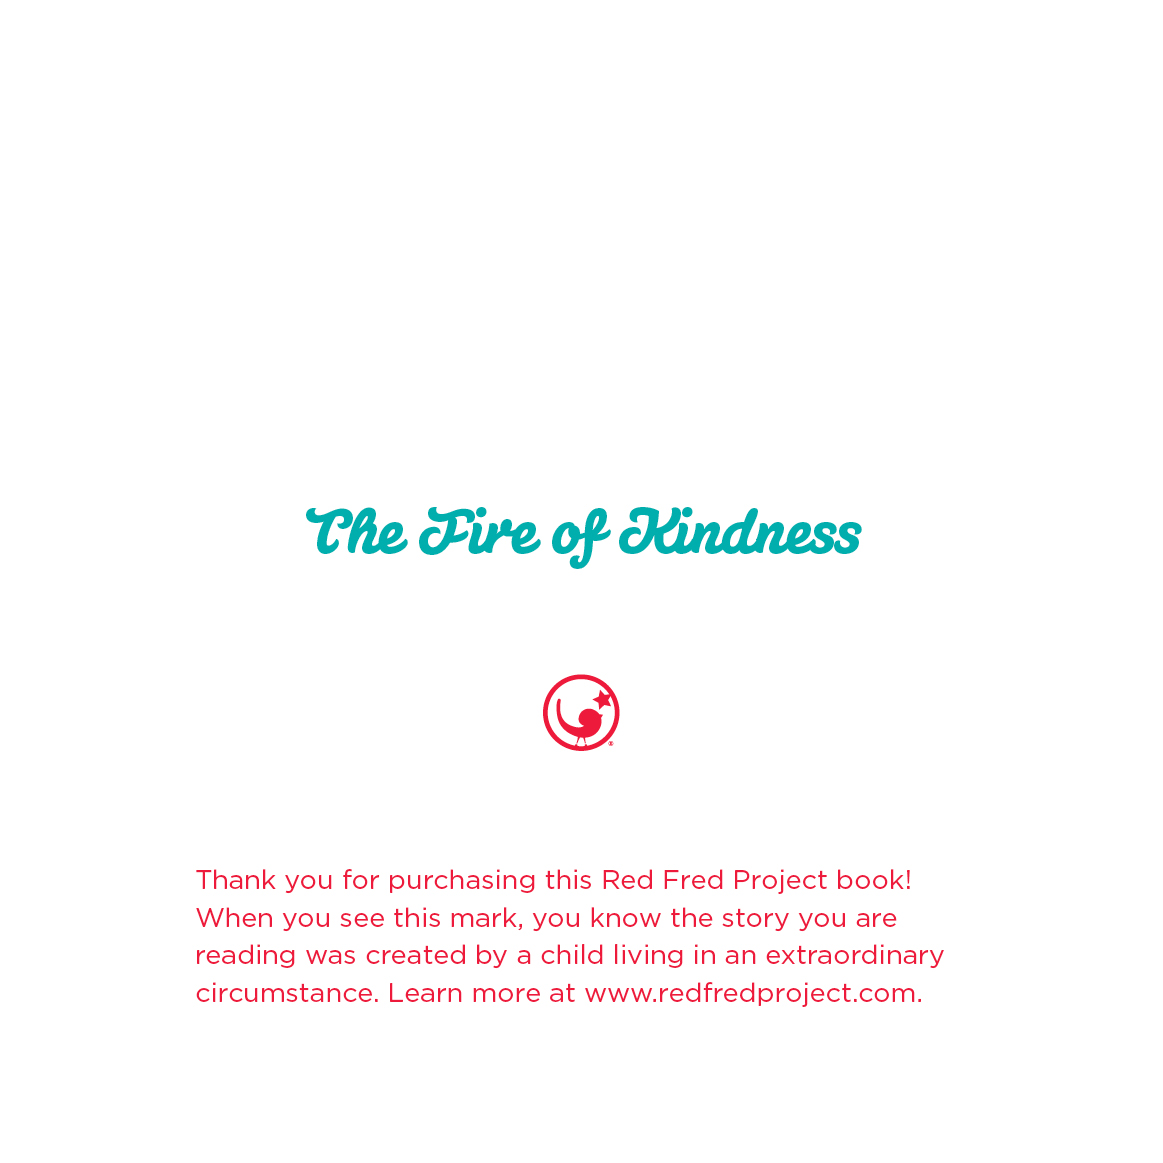 The Fire of Kindness_web3.jpg